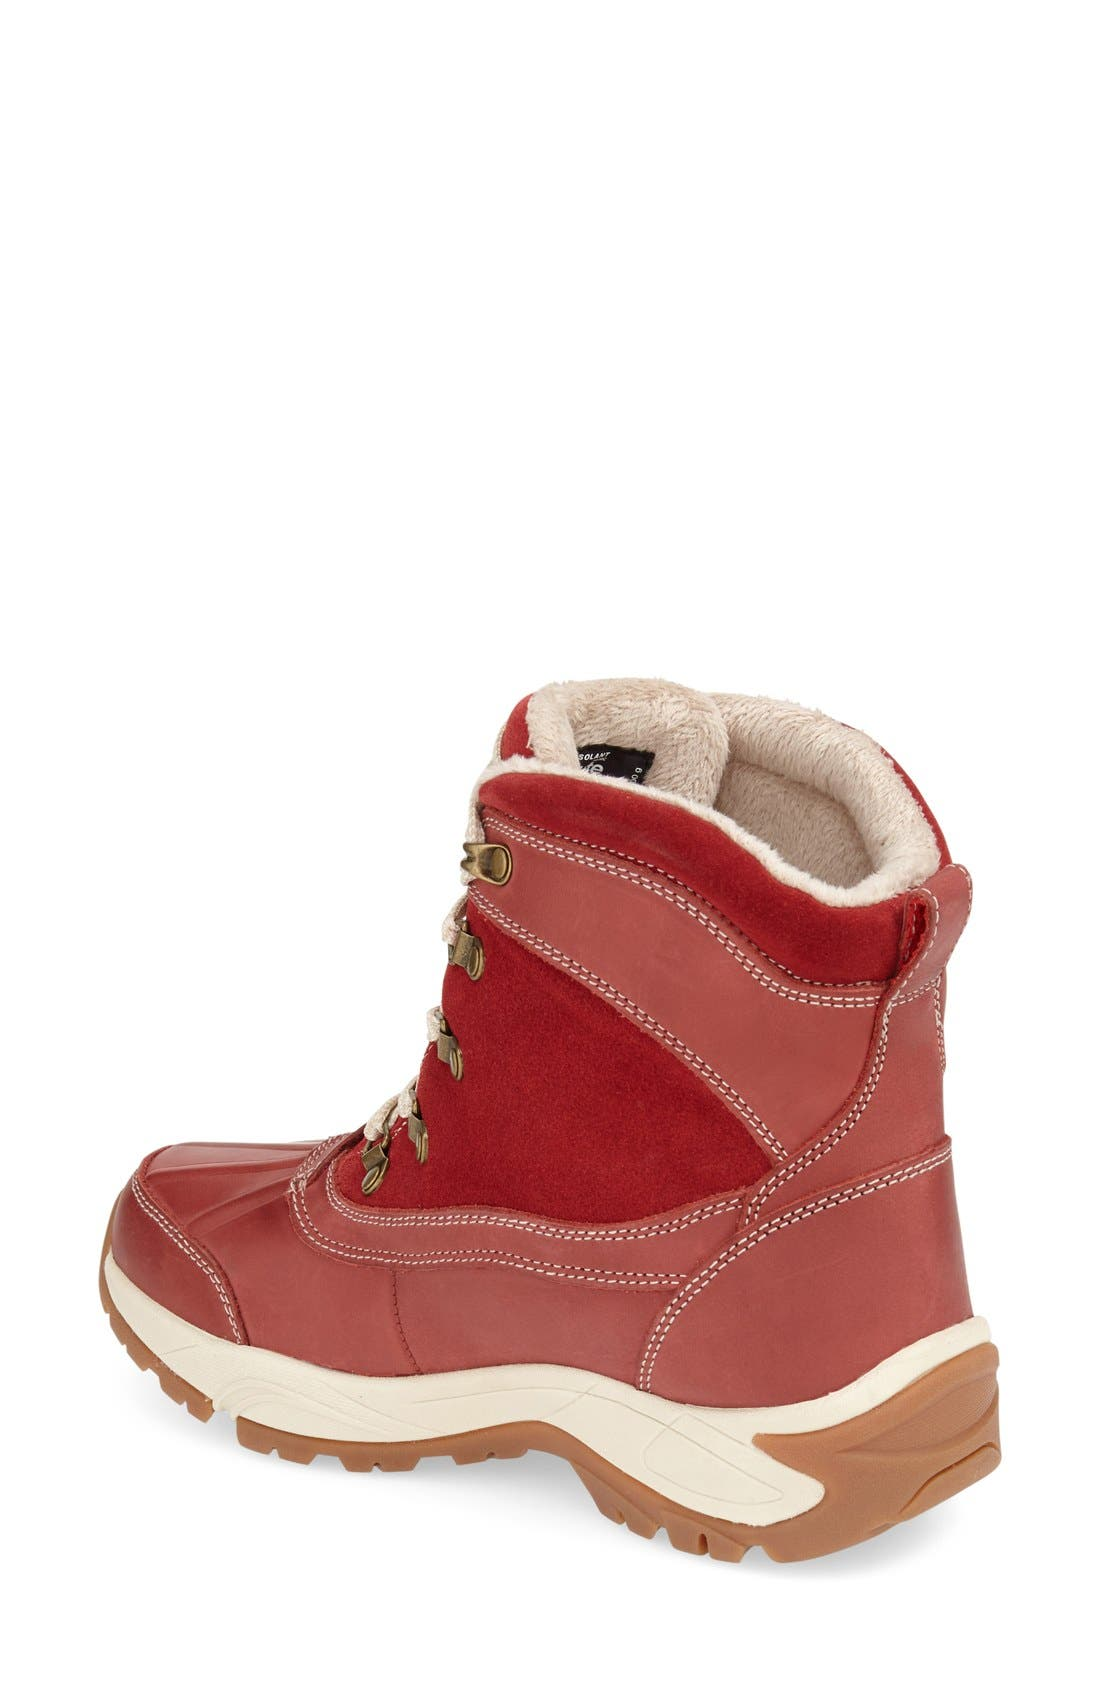 'Renee' Waterproof Insulated Winter Boot,                             Alternate thumbnail 2, color,                             Red Leather